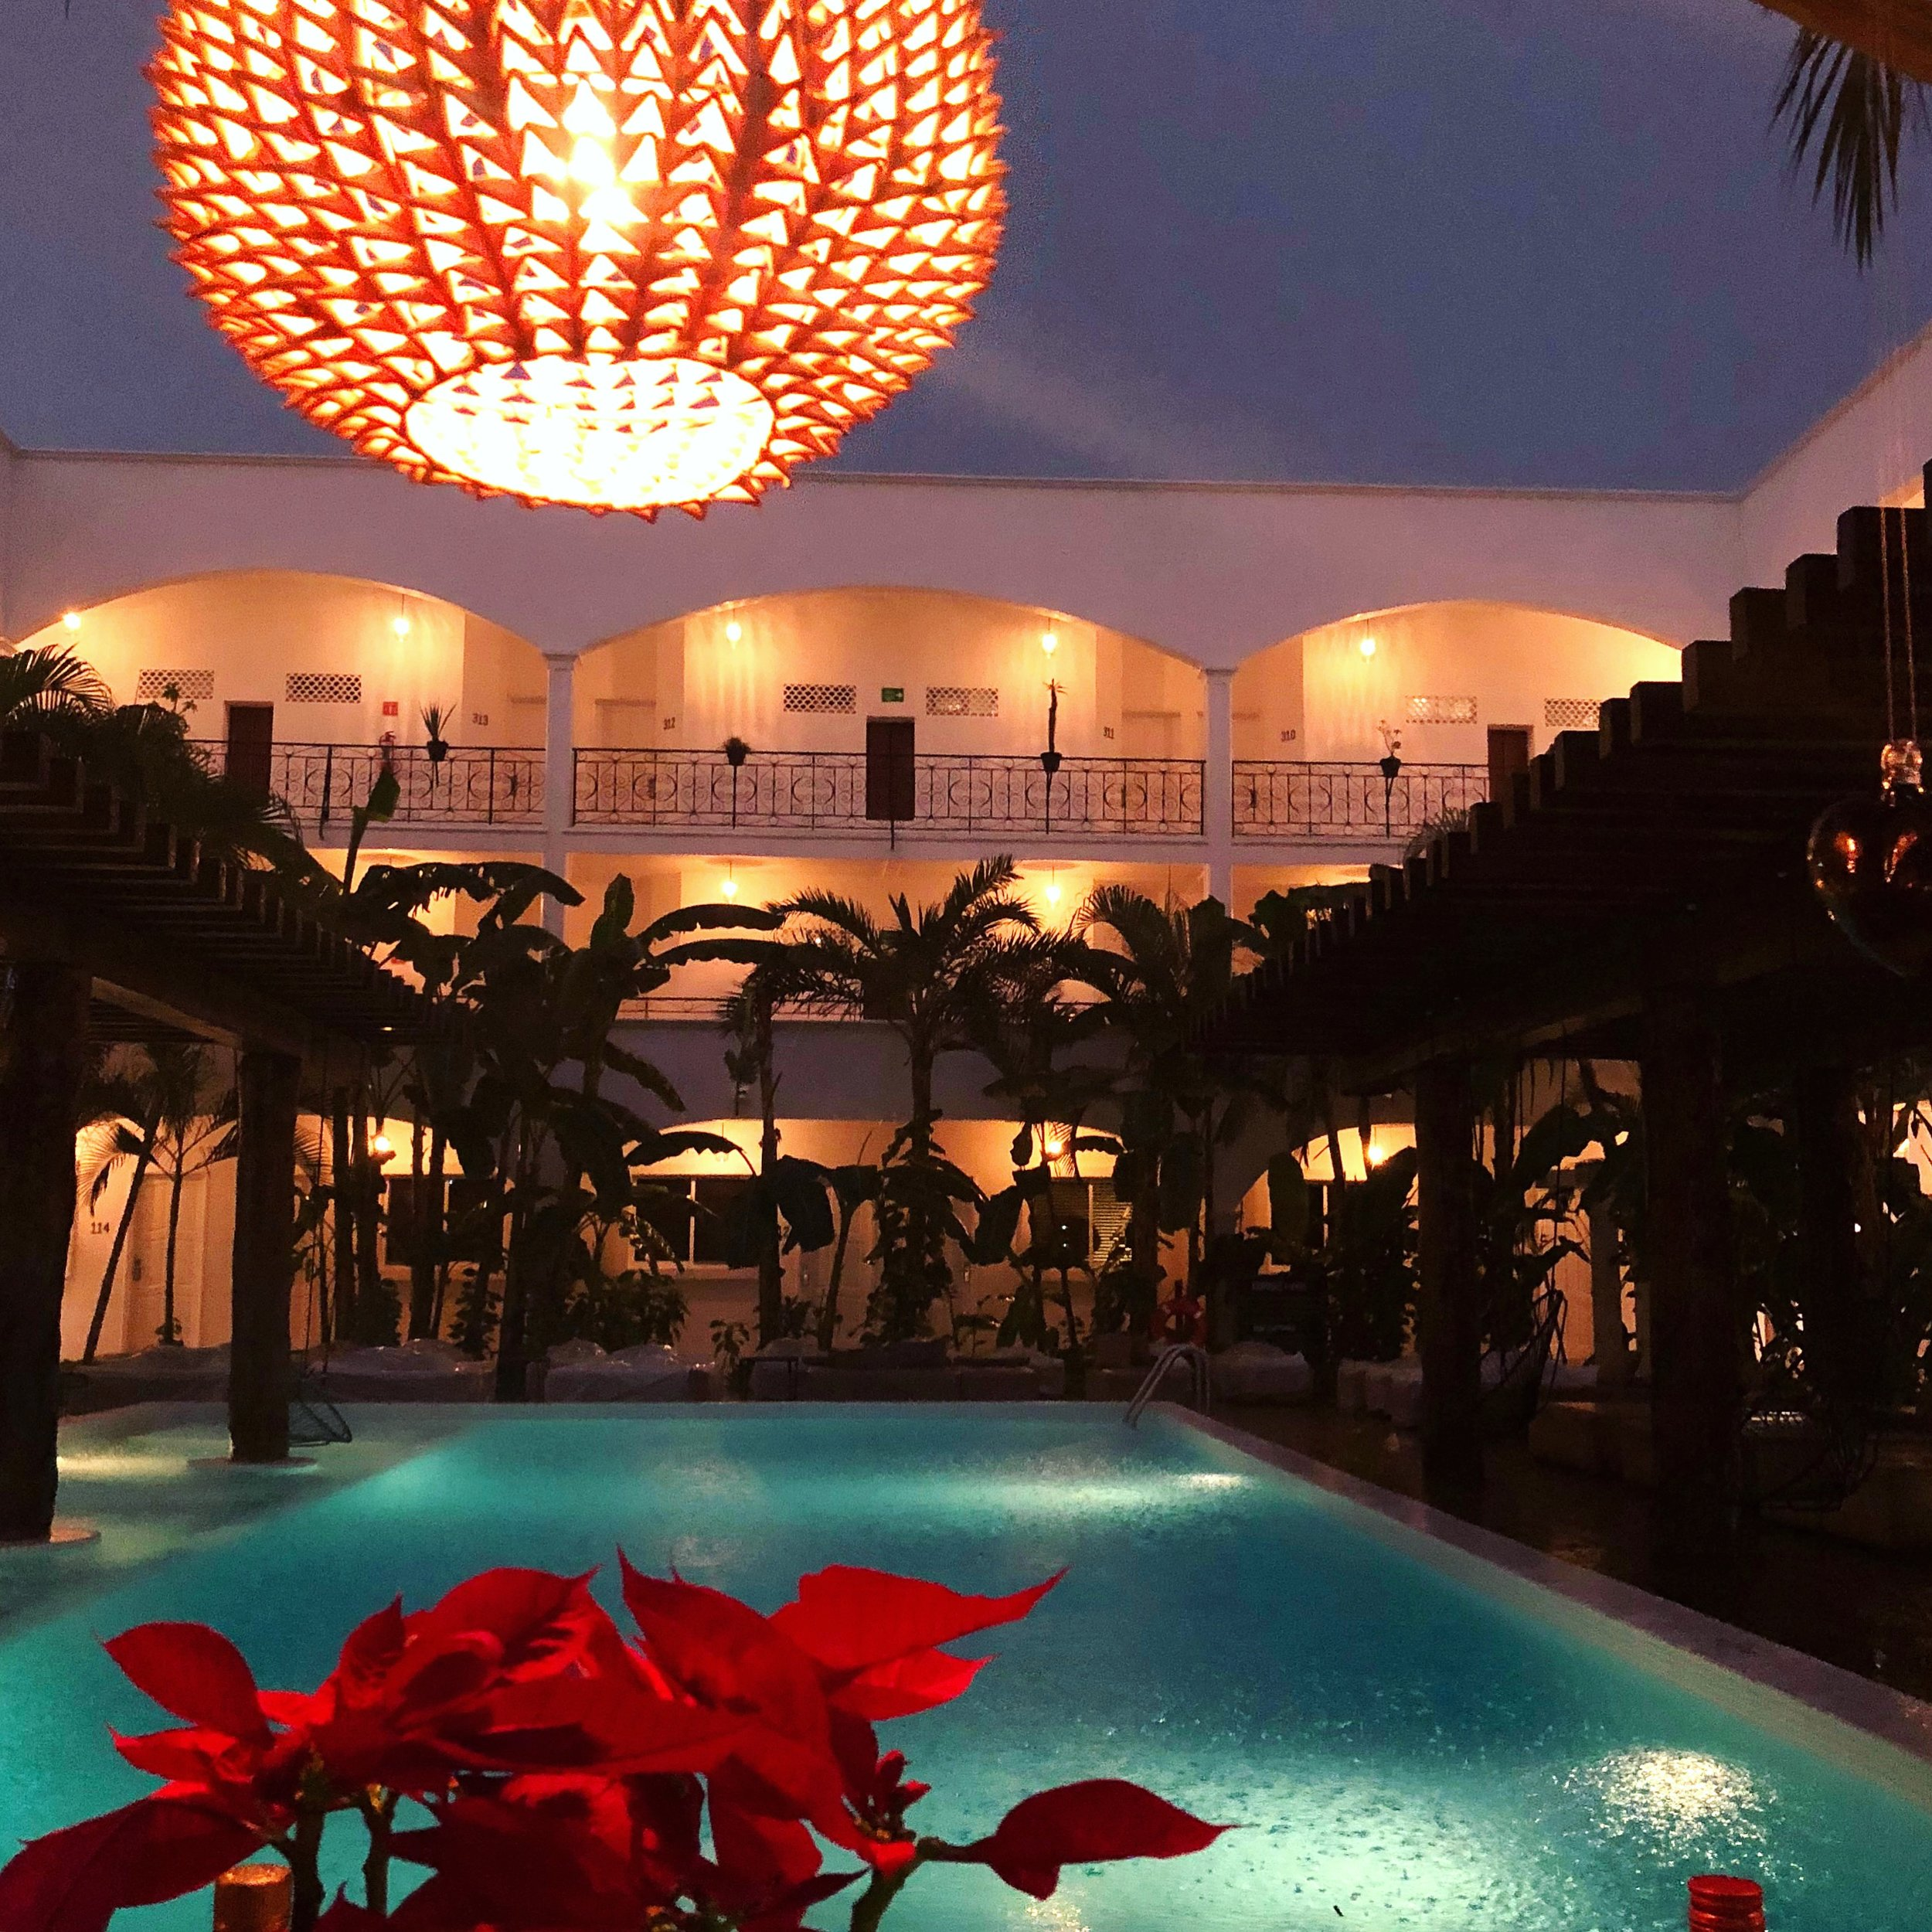 This is an image of  our hotel pool at HM Playa Del Carmen in Playa del Carmen, Mexico. The pool is a great place to grab a beer, relax, and have nice conversations with staff.